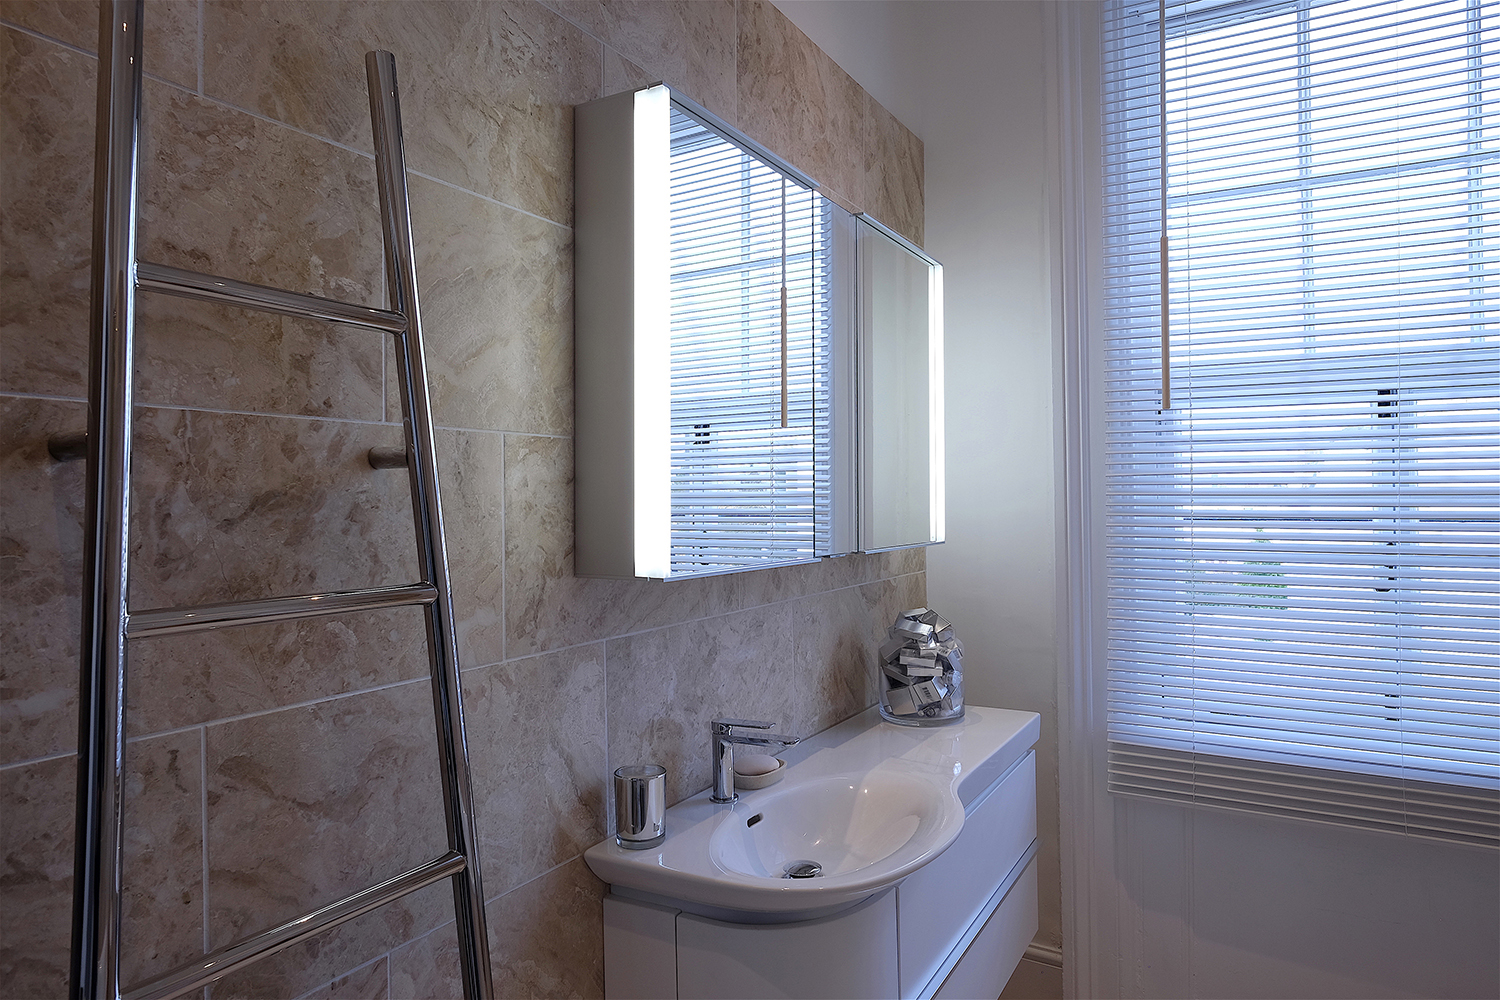 Marble bathroom wall tiles and heated towel rail